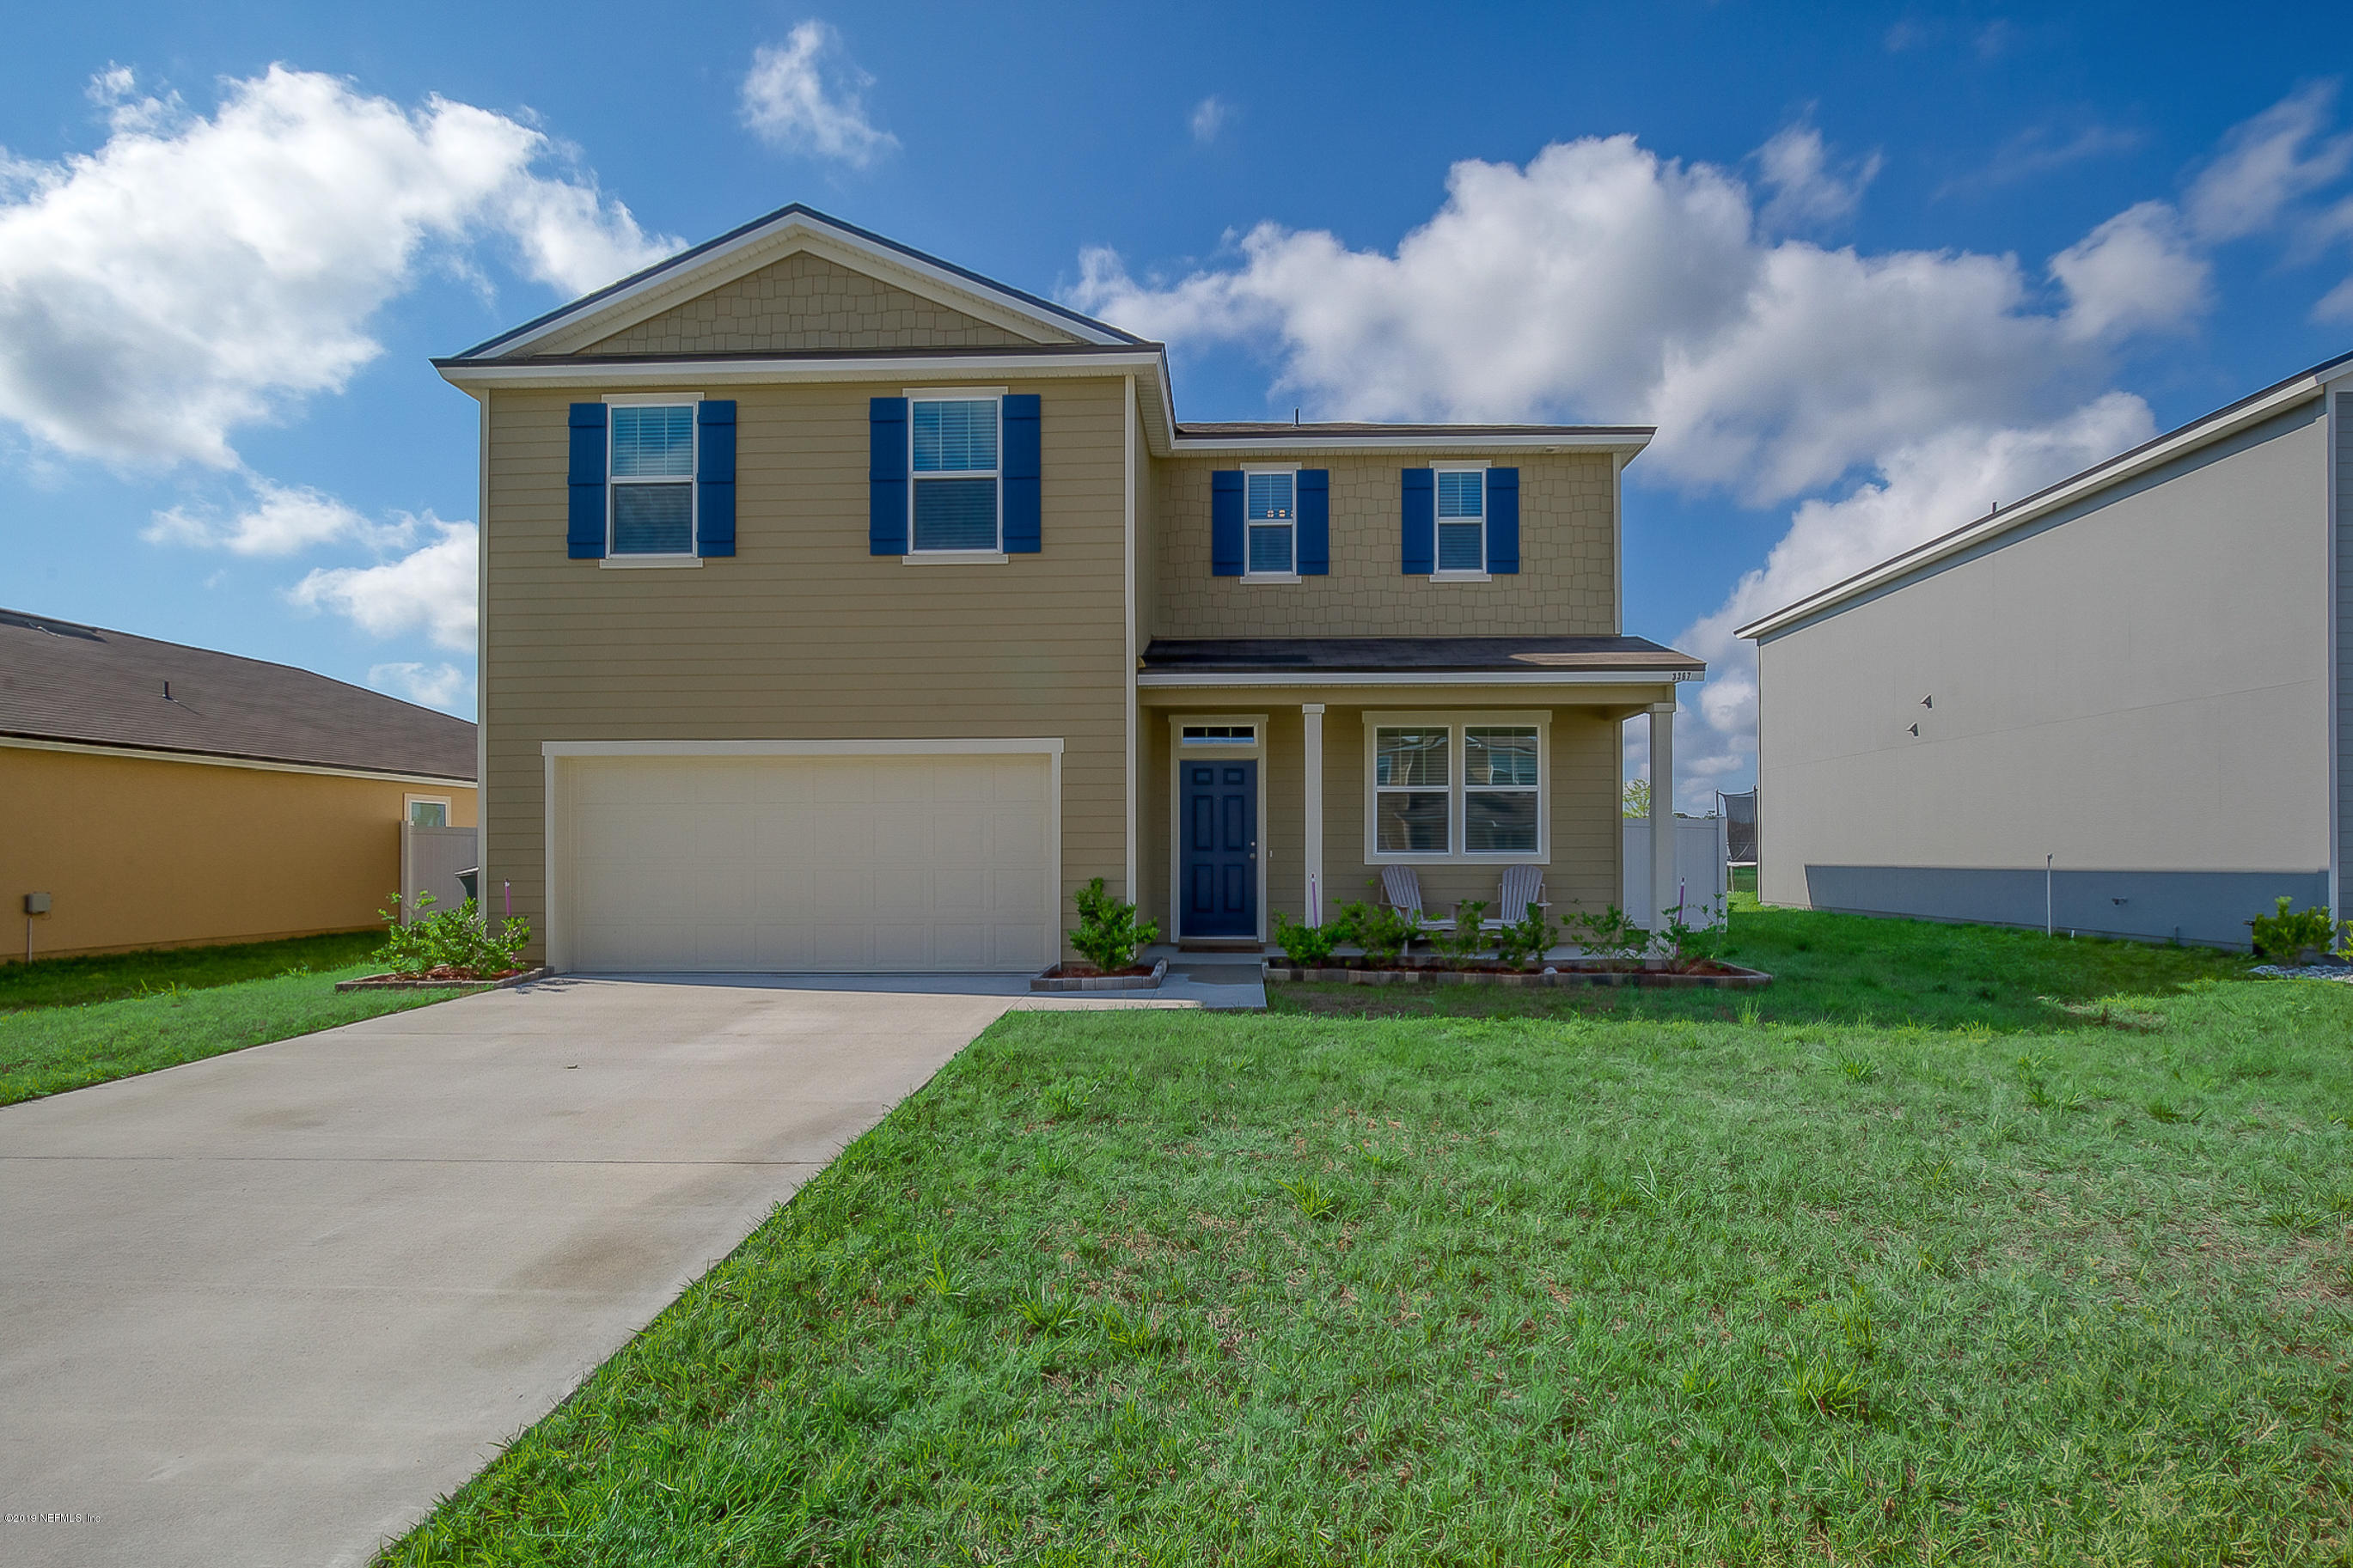 Photo of 3367 CANYON FALLS, GREEN COVE SPRINGS, FL 32043